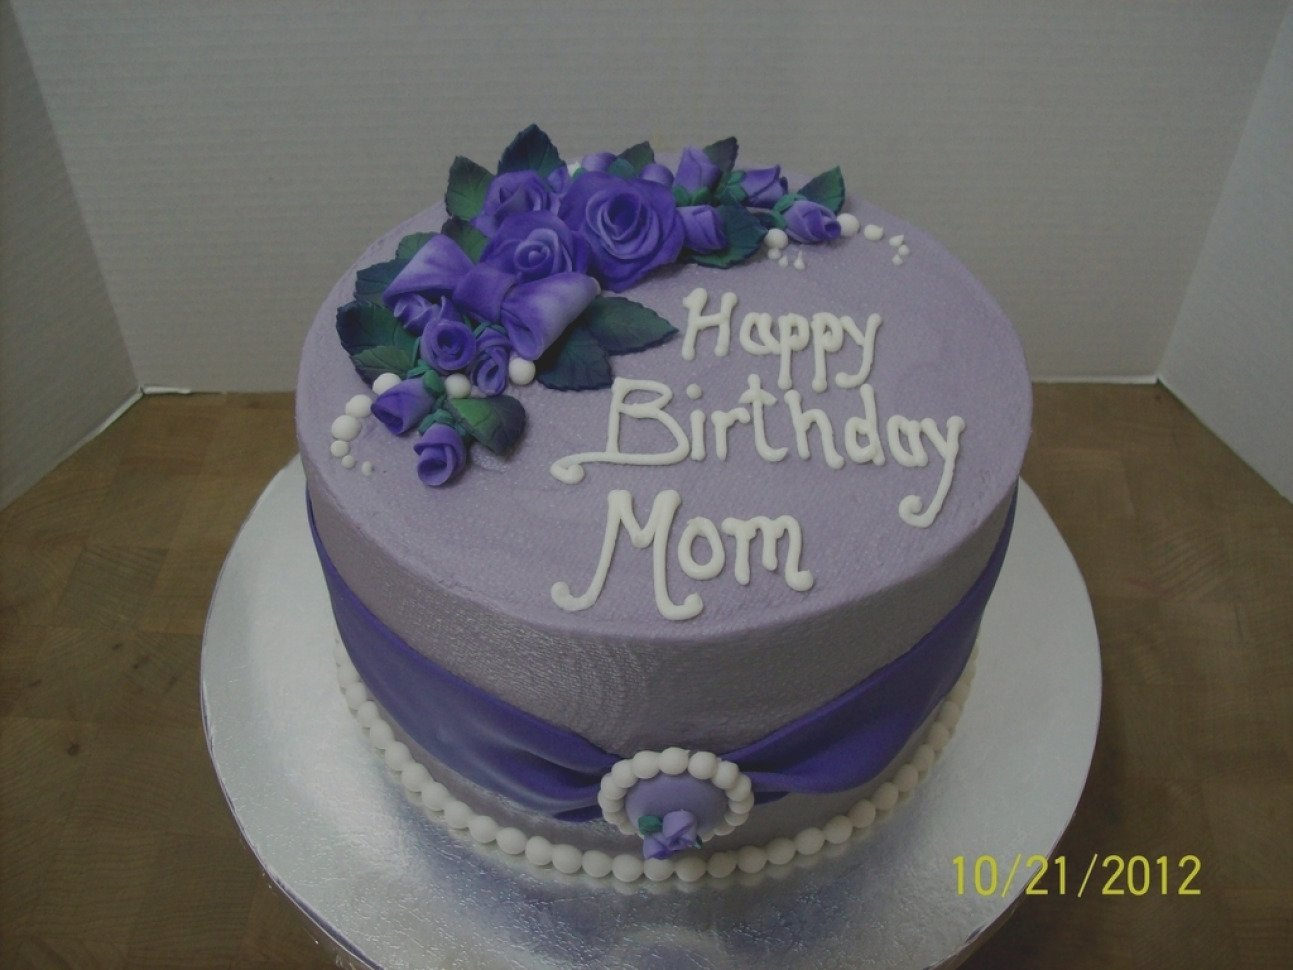 Birthdays Jpg 65th Source Birthday Cake Ideas For Mom The Best HD Wallpaper